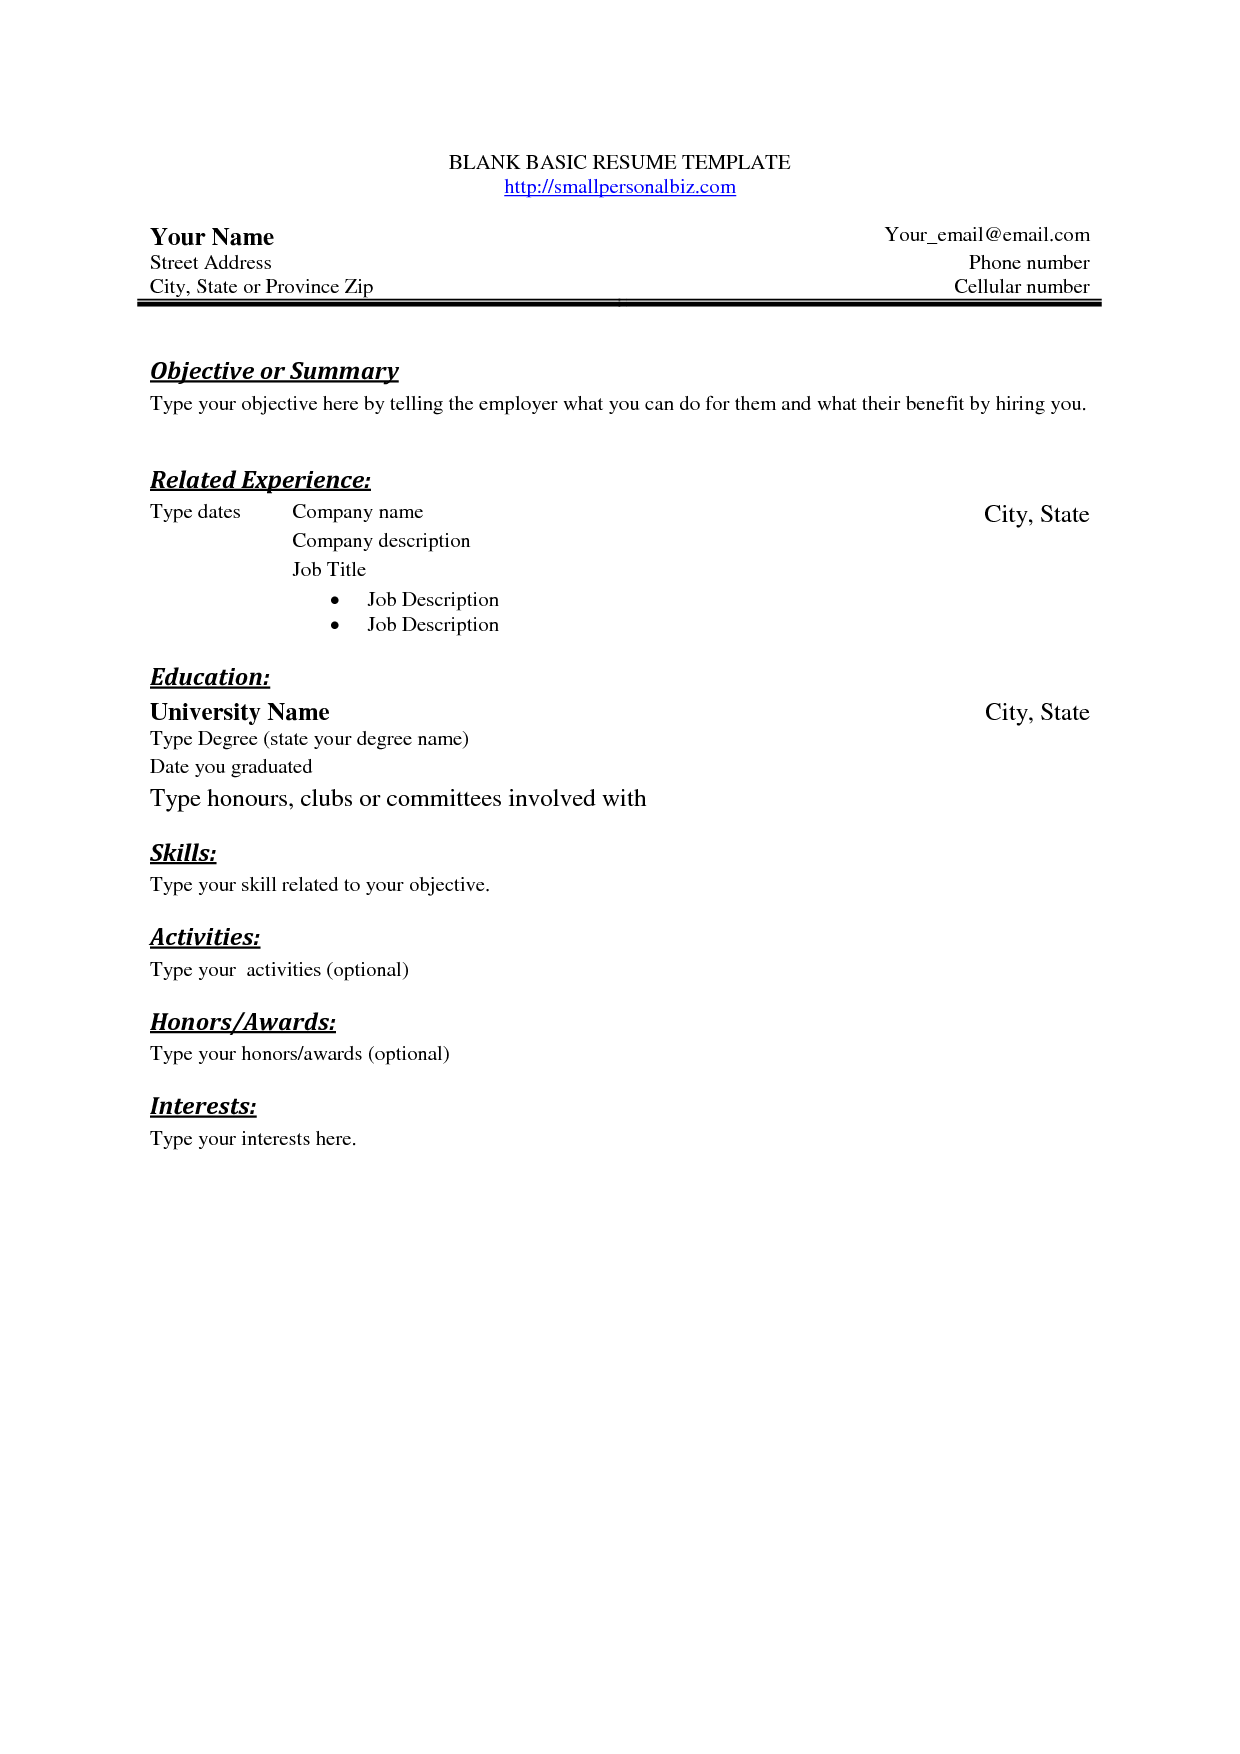 Resume Templates Tamu New Stylist And Luxury Simple Resume Layout 10 Free Basic Blank Resume